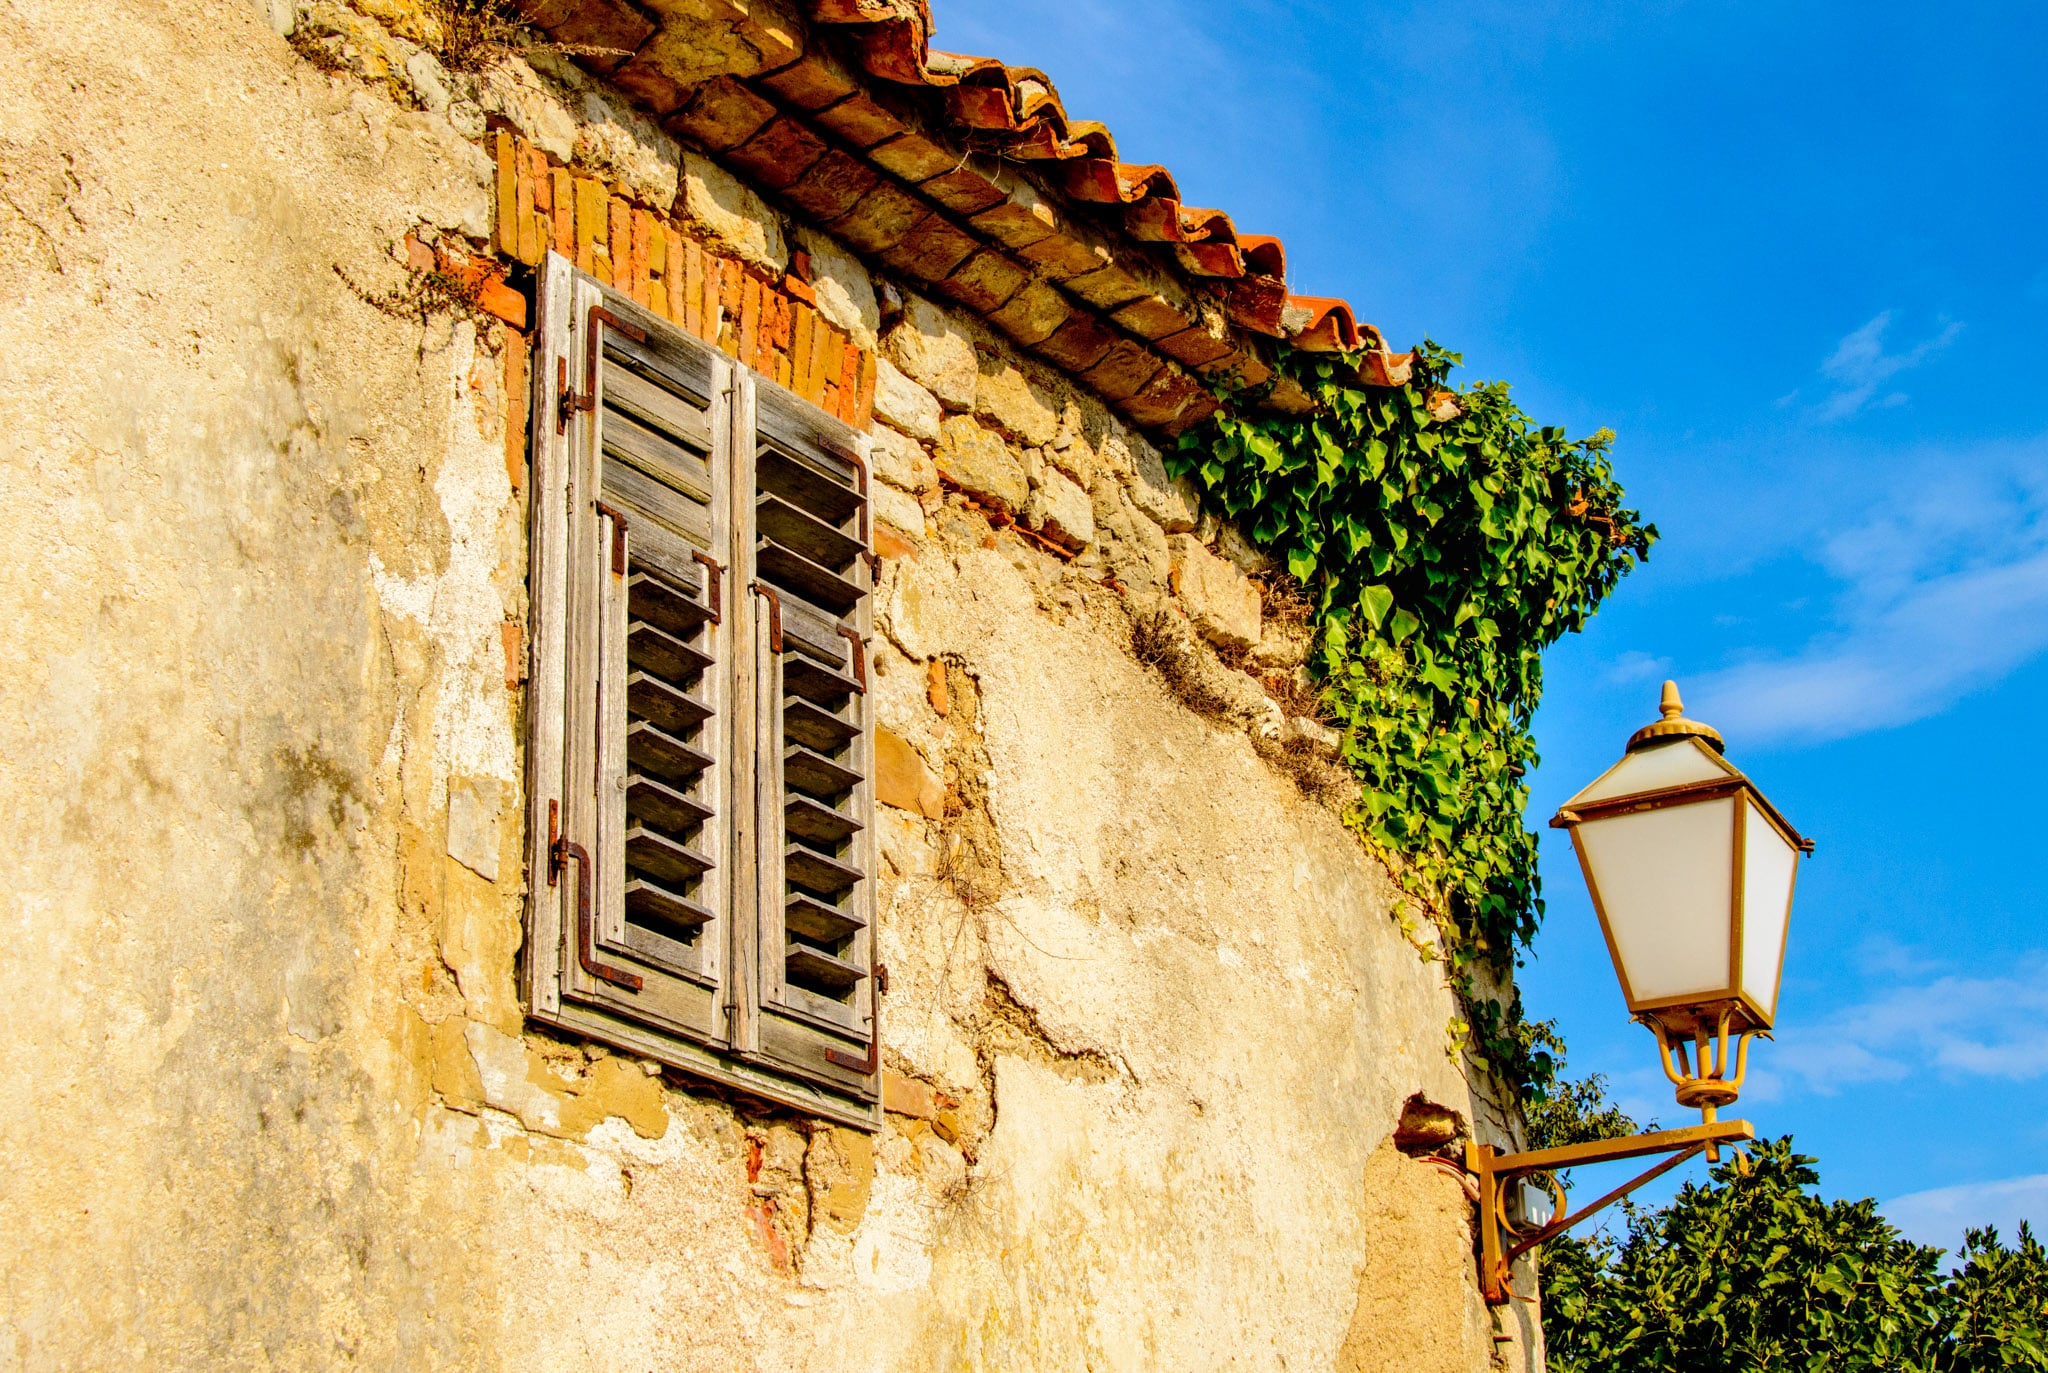 A street light and ivey adorn the ruined walls of a structure in Krk, Croatia.